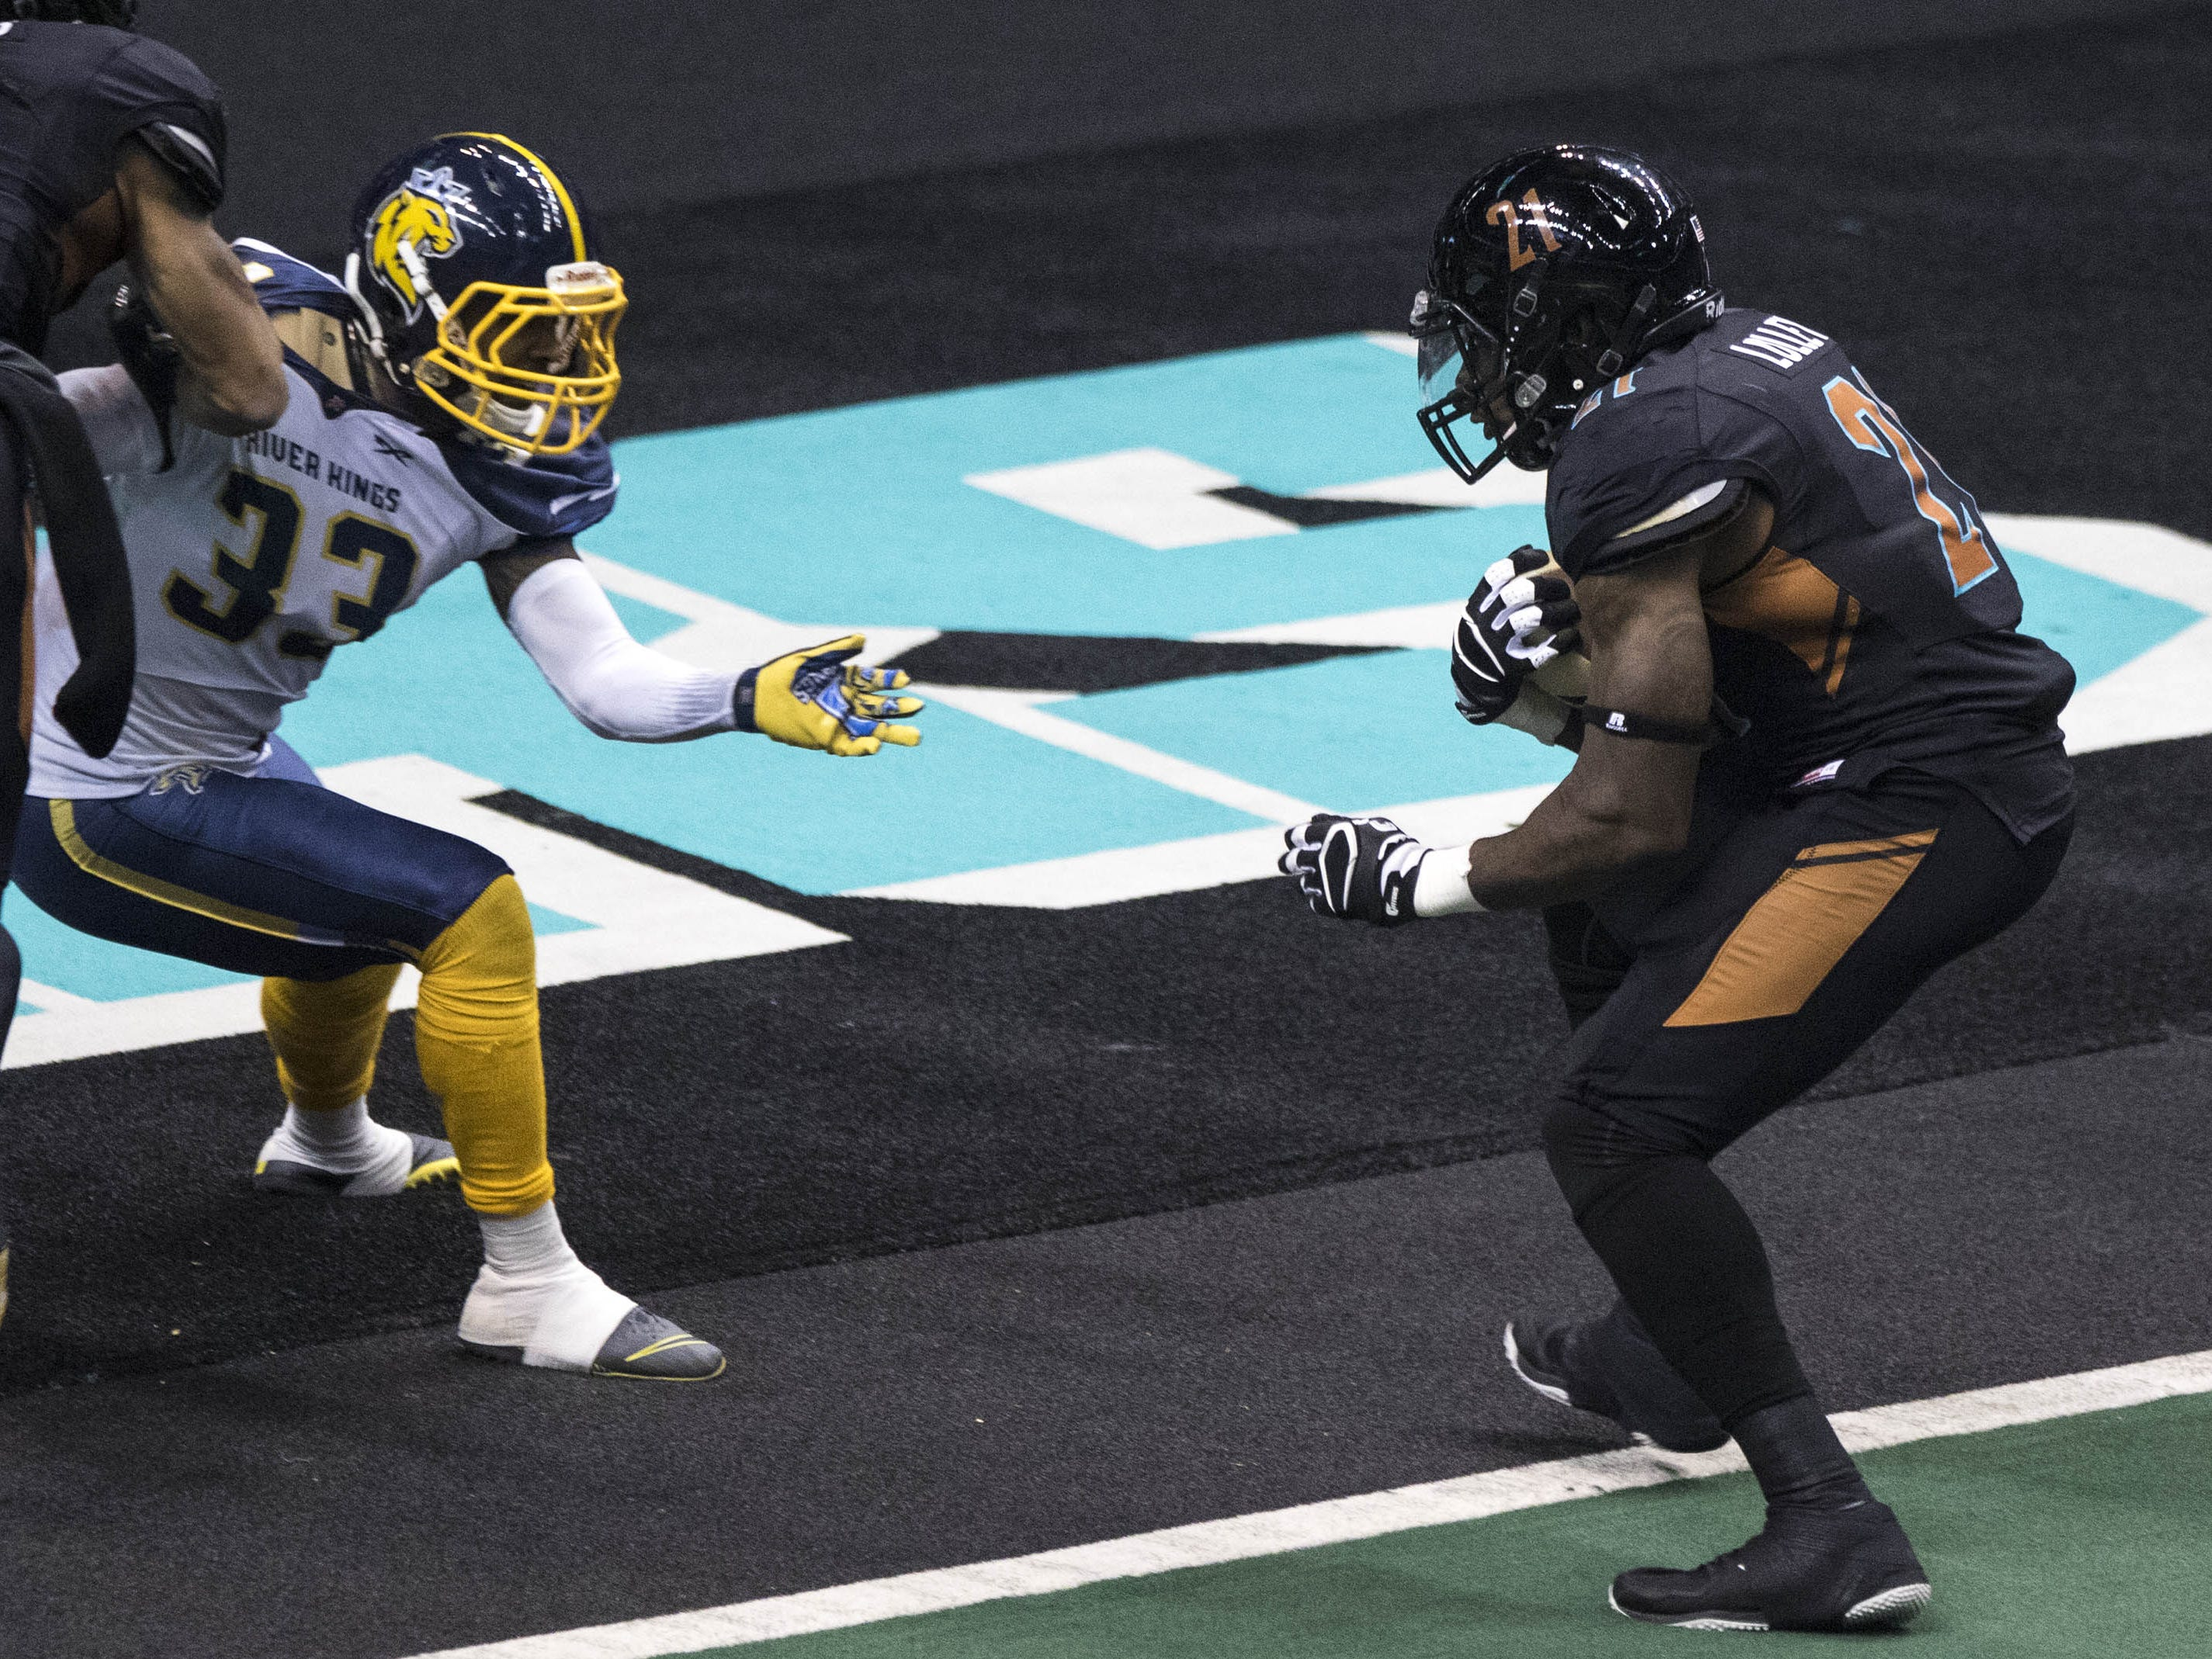 Arizona Rattlers' Jabre Lolley (21) crosses the goal line as Cedar Rapids River Kings' Tavion Garrison (33) gets blocked during the first half of their game at Talking Stick Resort Arena in Phoenix, Sunday, March 3, 2019.